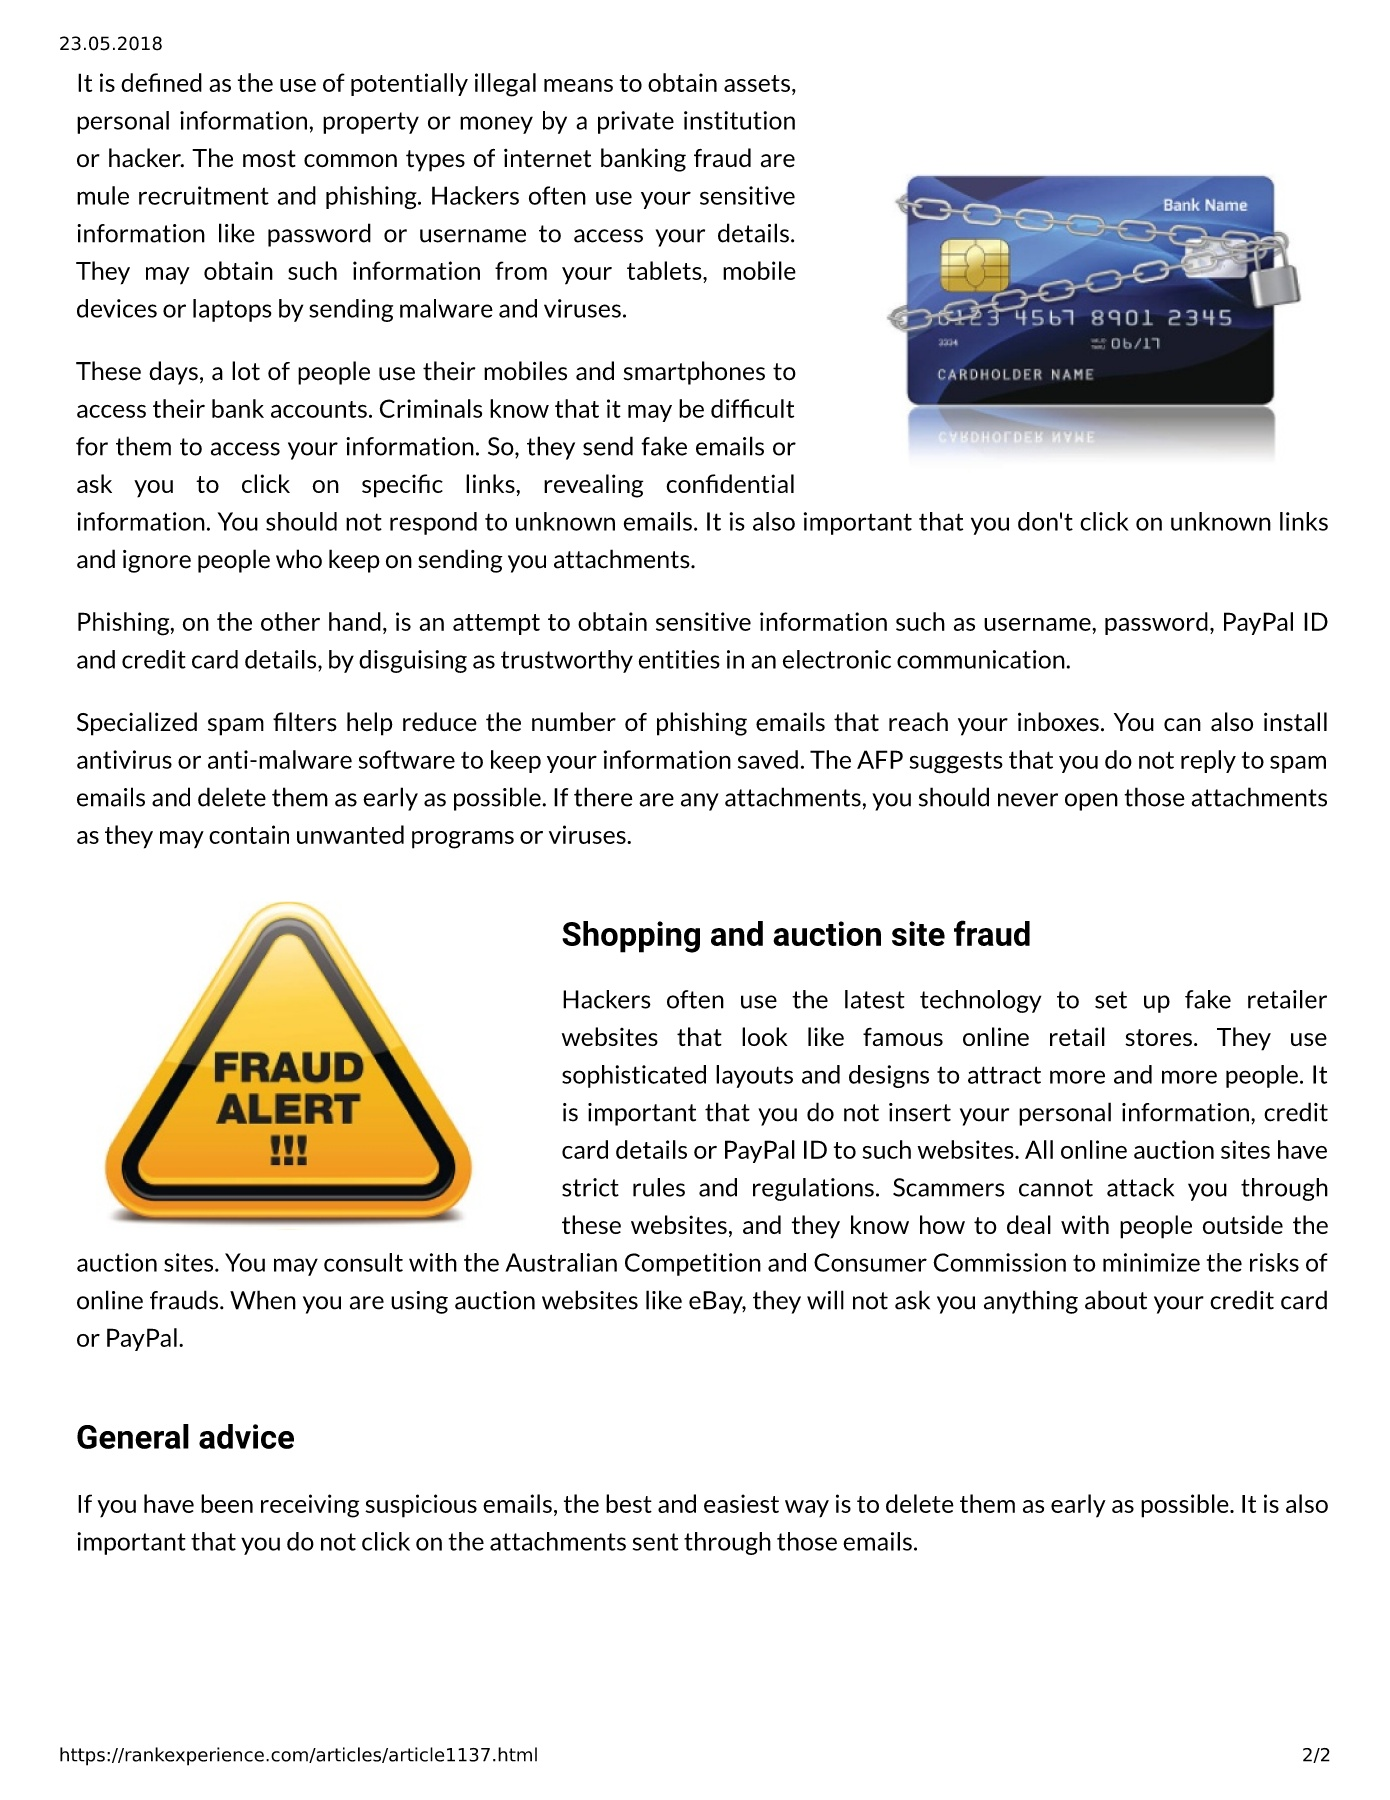 Semalt Expert Assures That You Need To Learn About Online Frauds And